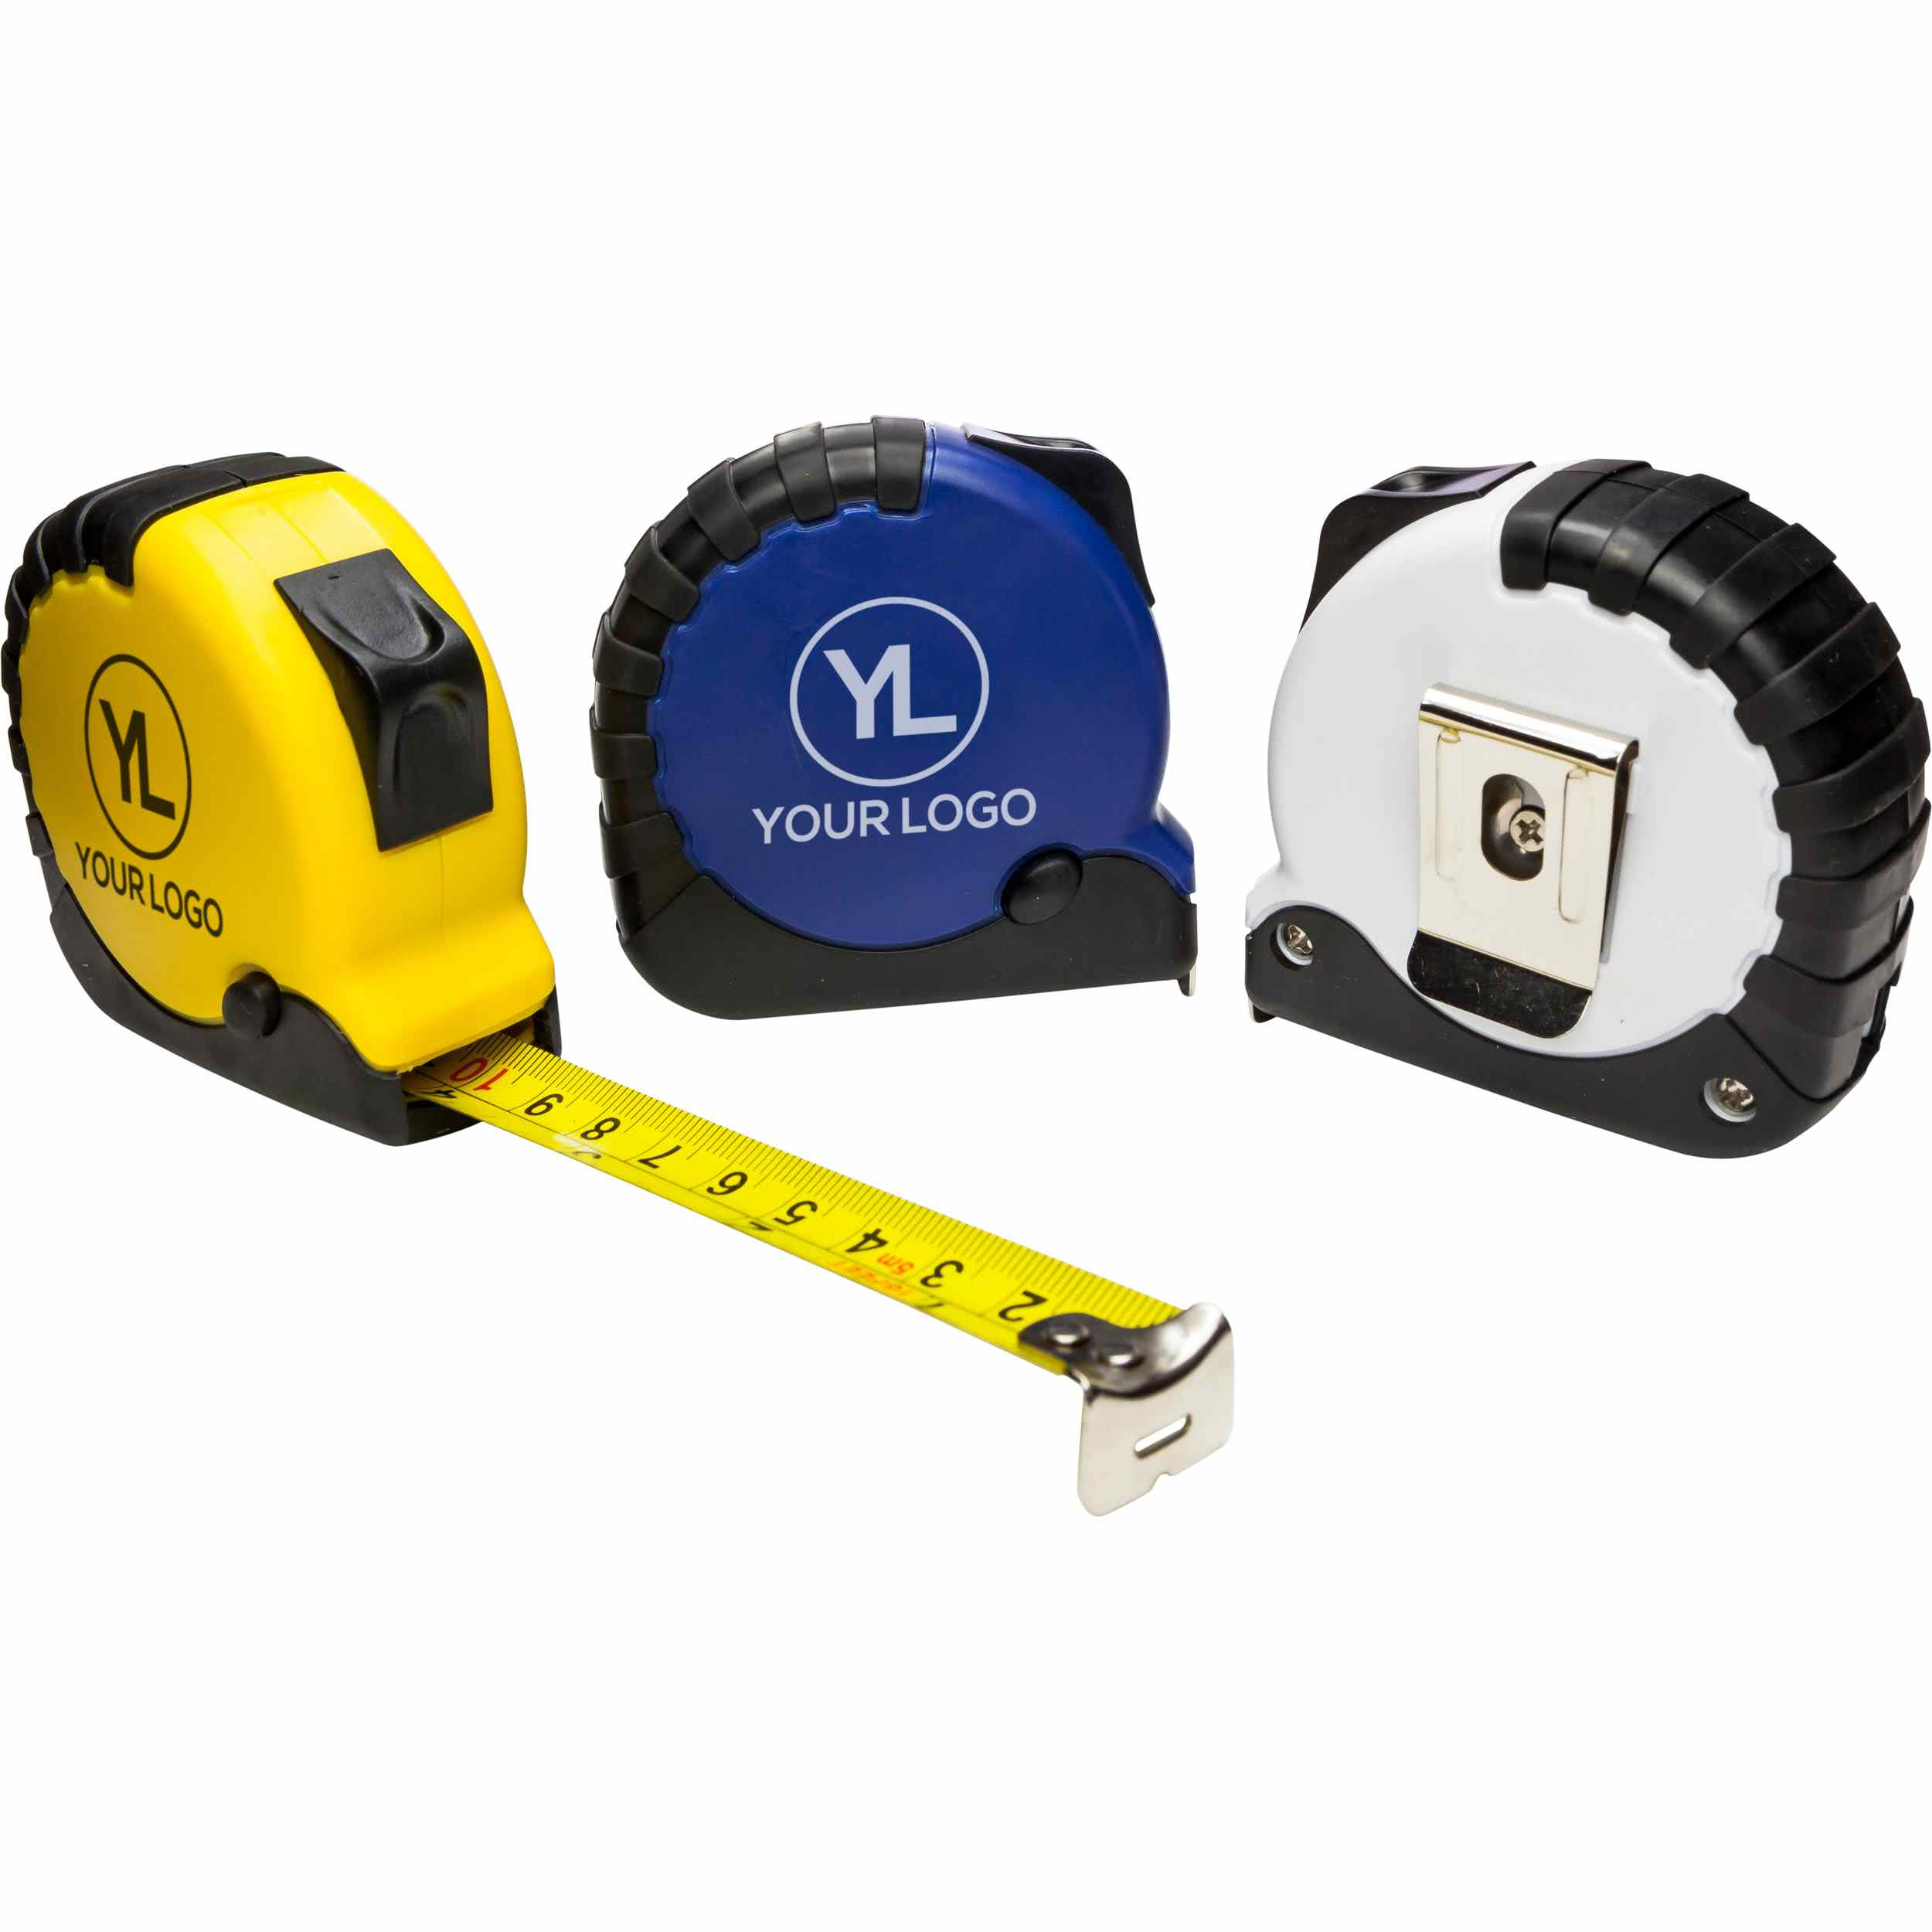 Tape measure clipart side view jpg download 16 Foot Tape Measure jpg download